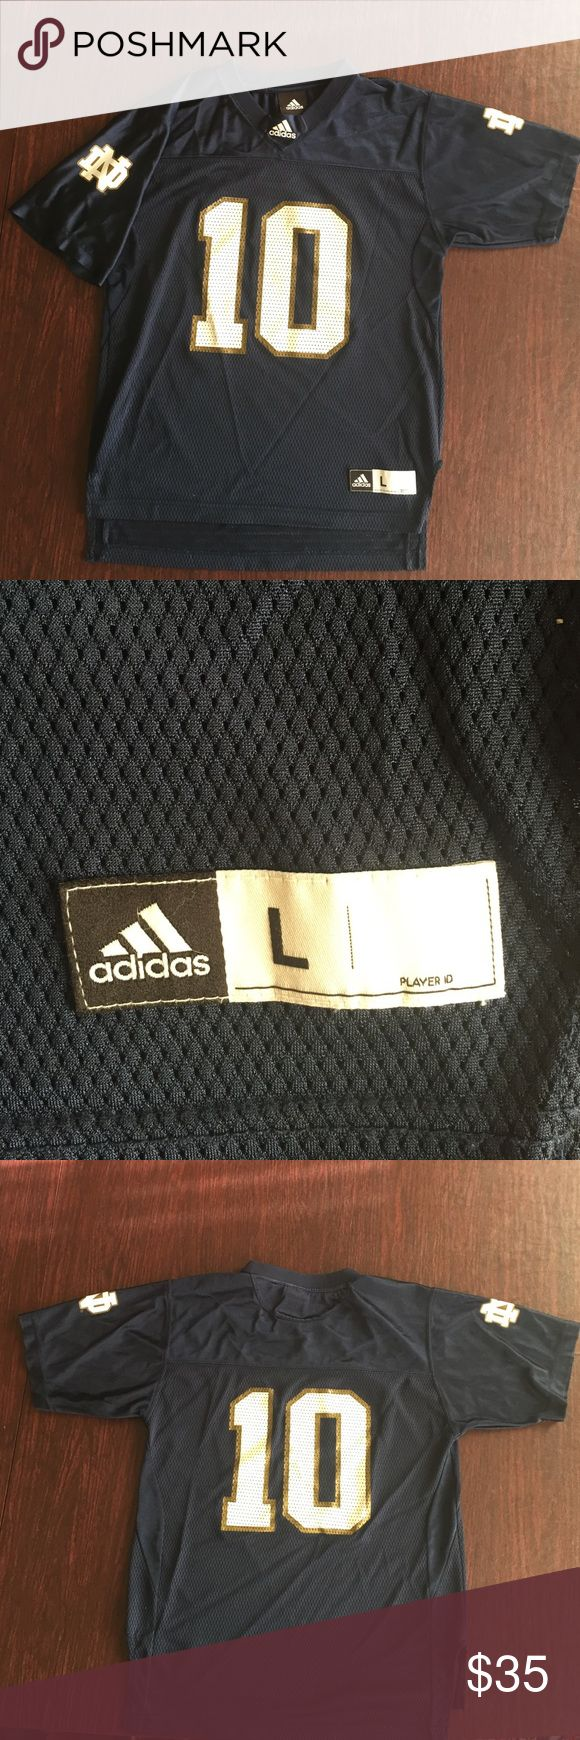 Official Notre Dame Jersey Official Adidas #10 Notre Dame jersey. Youth L but can still be worn by women. Lightly worn no marks or imperfections 🍀 Adidas Shirts & Tops